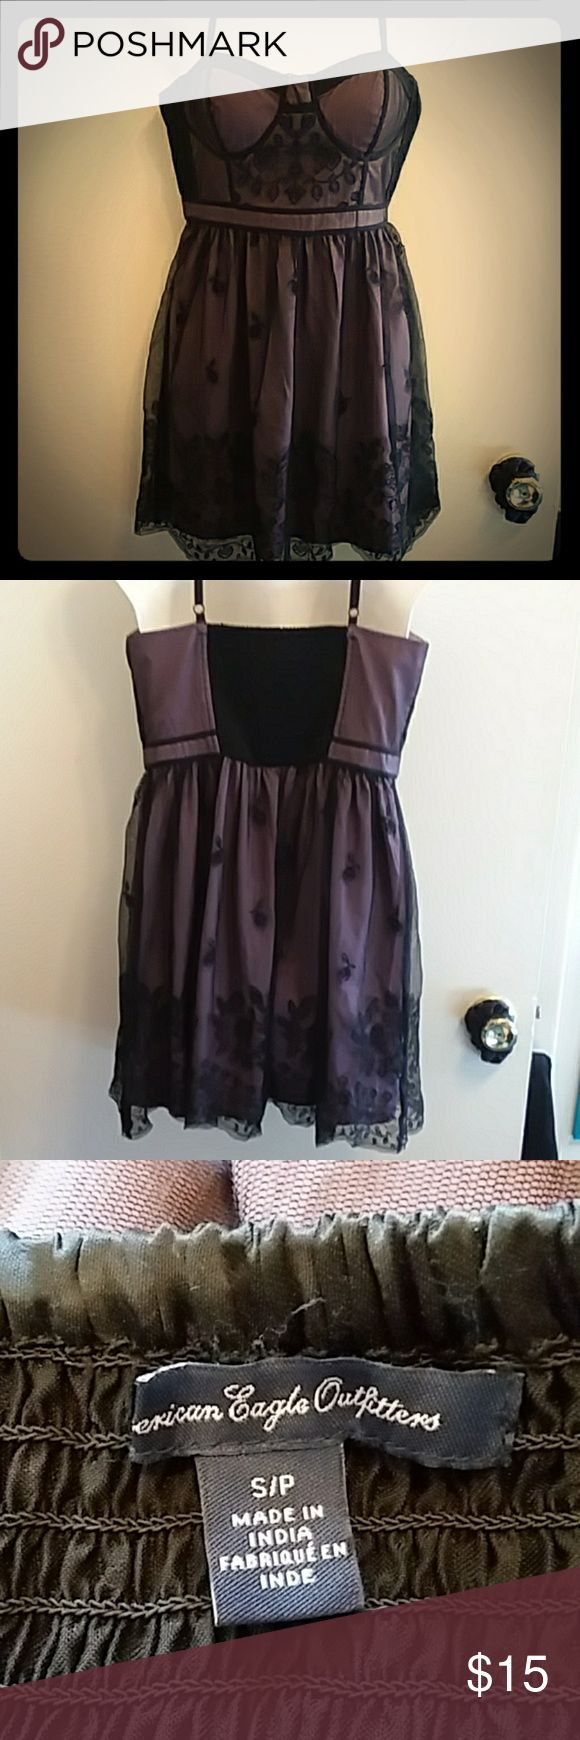 Black and Purple Dress American Eagle Outfitters black and Purple dress. Has purple under the black lace later. Size s/p. Has stretchy part on back. American Eagle Outfitters Dresses #americaneagleoutfitters